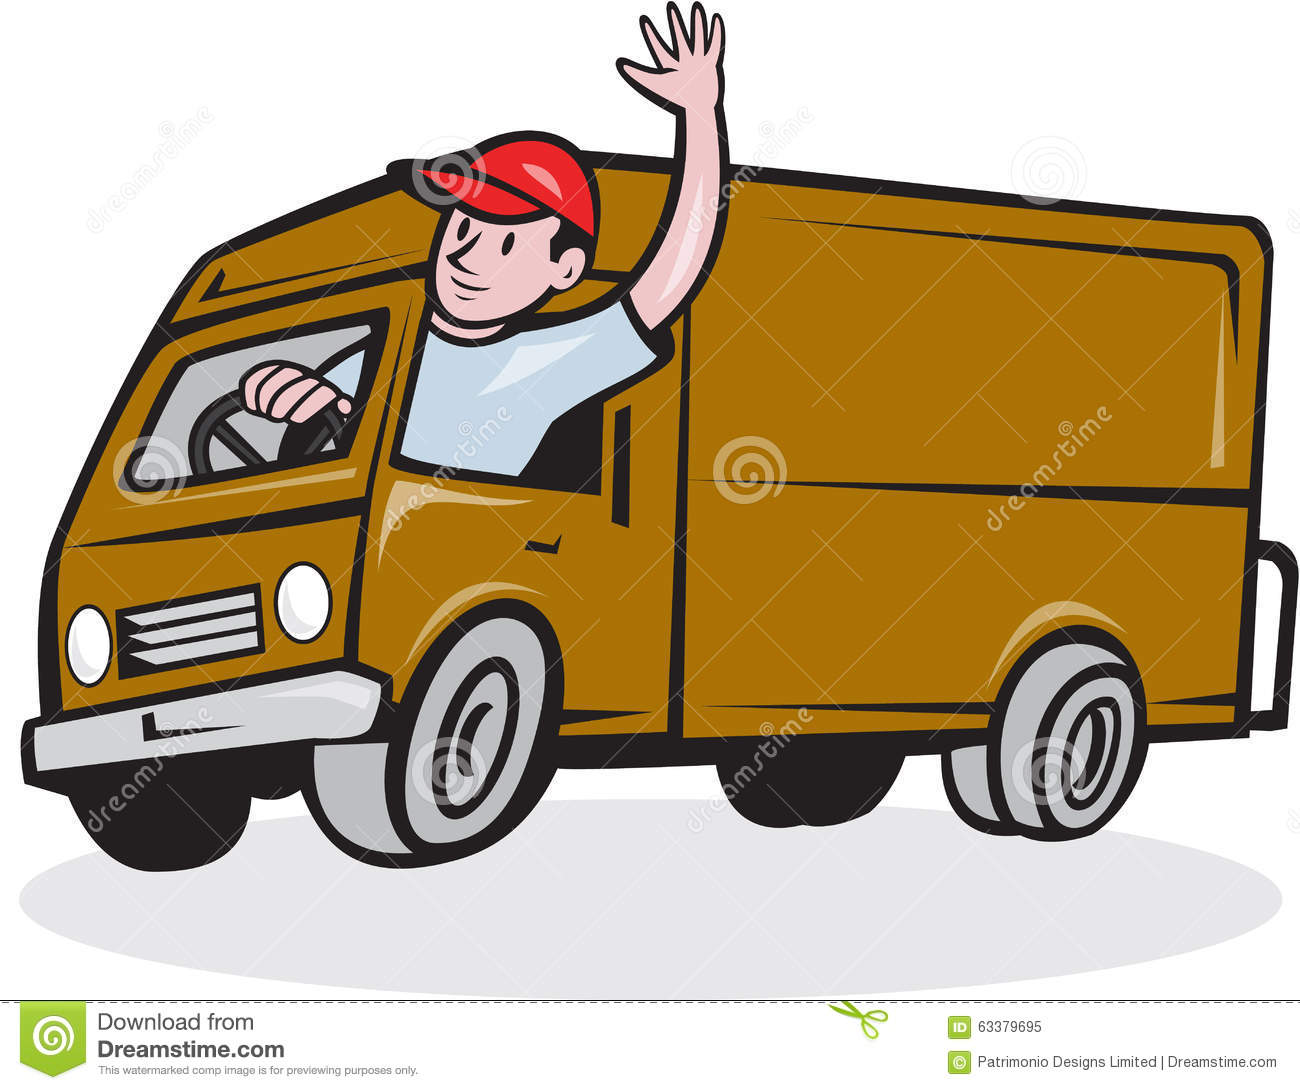 delivery driver clip art - photo #21